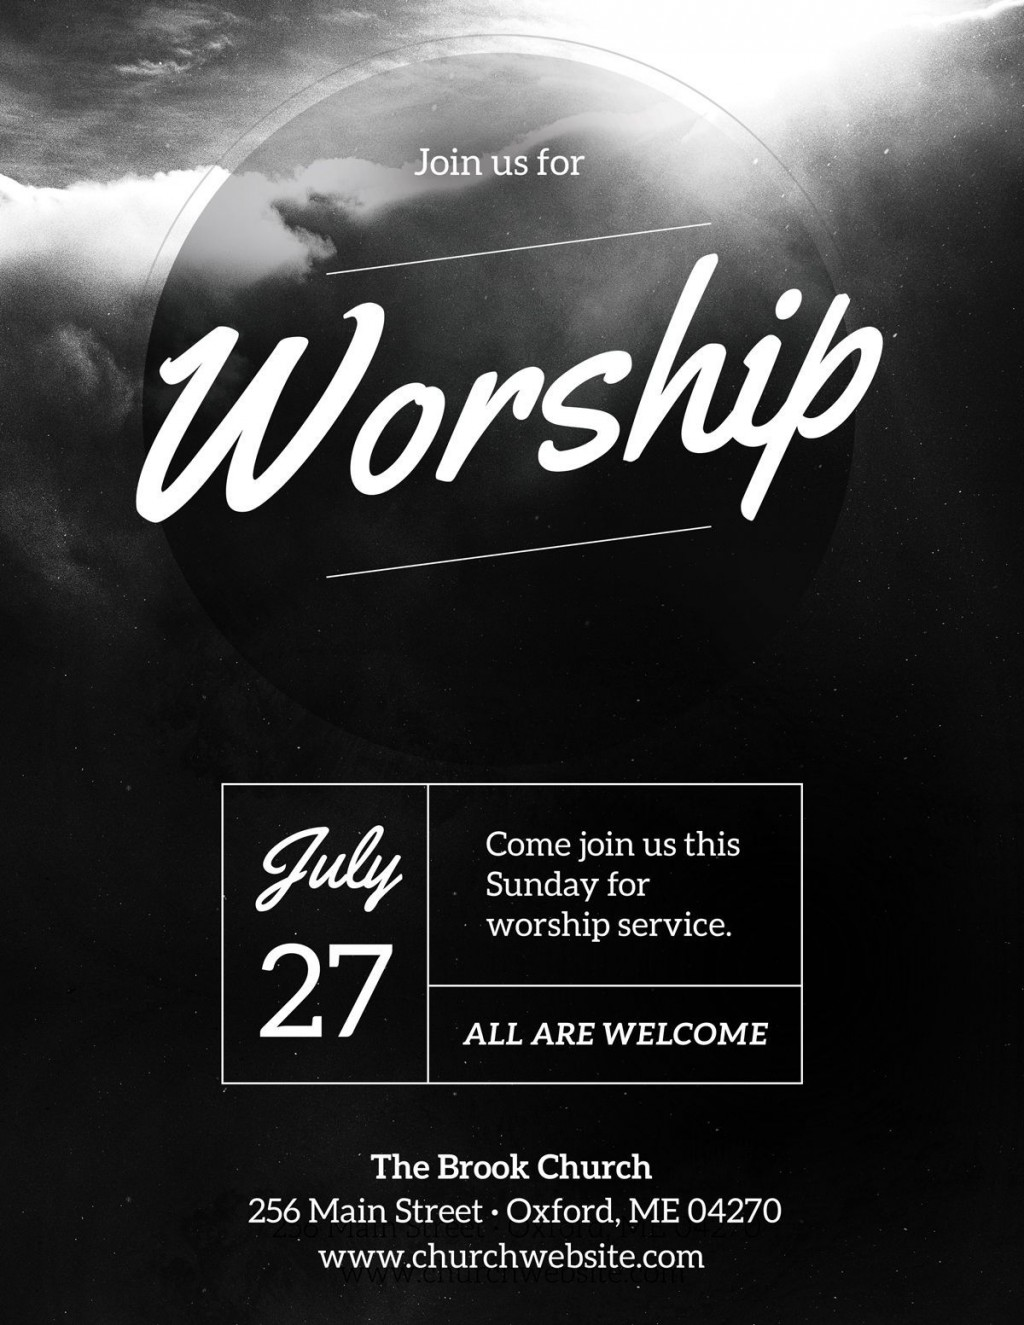 003 Phenomenal Church Flyer Template Free Download Highest Quality  Event PsdLarge